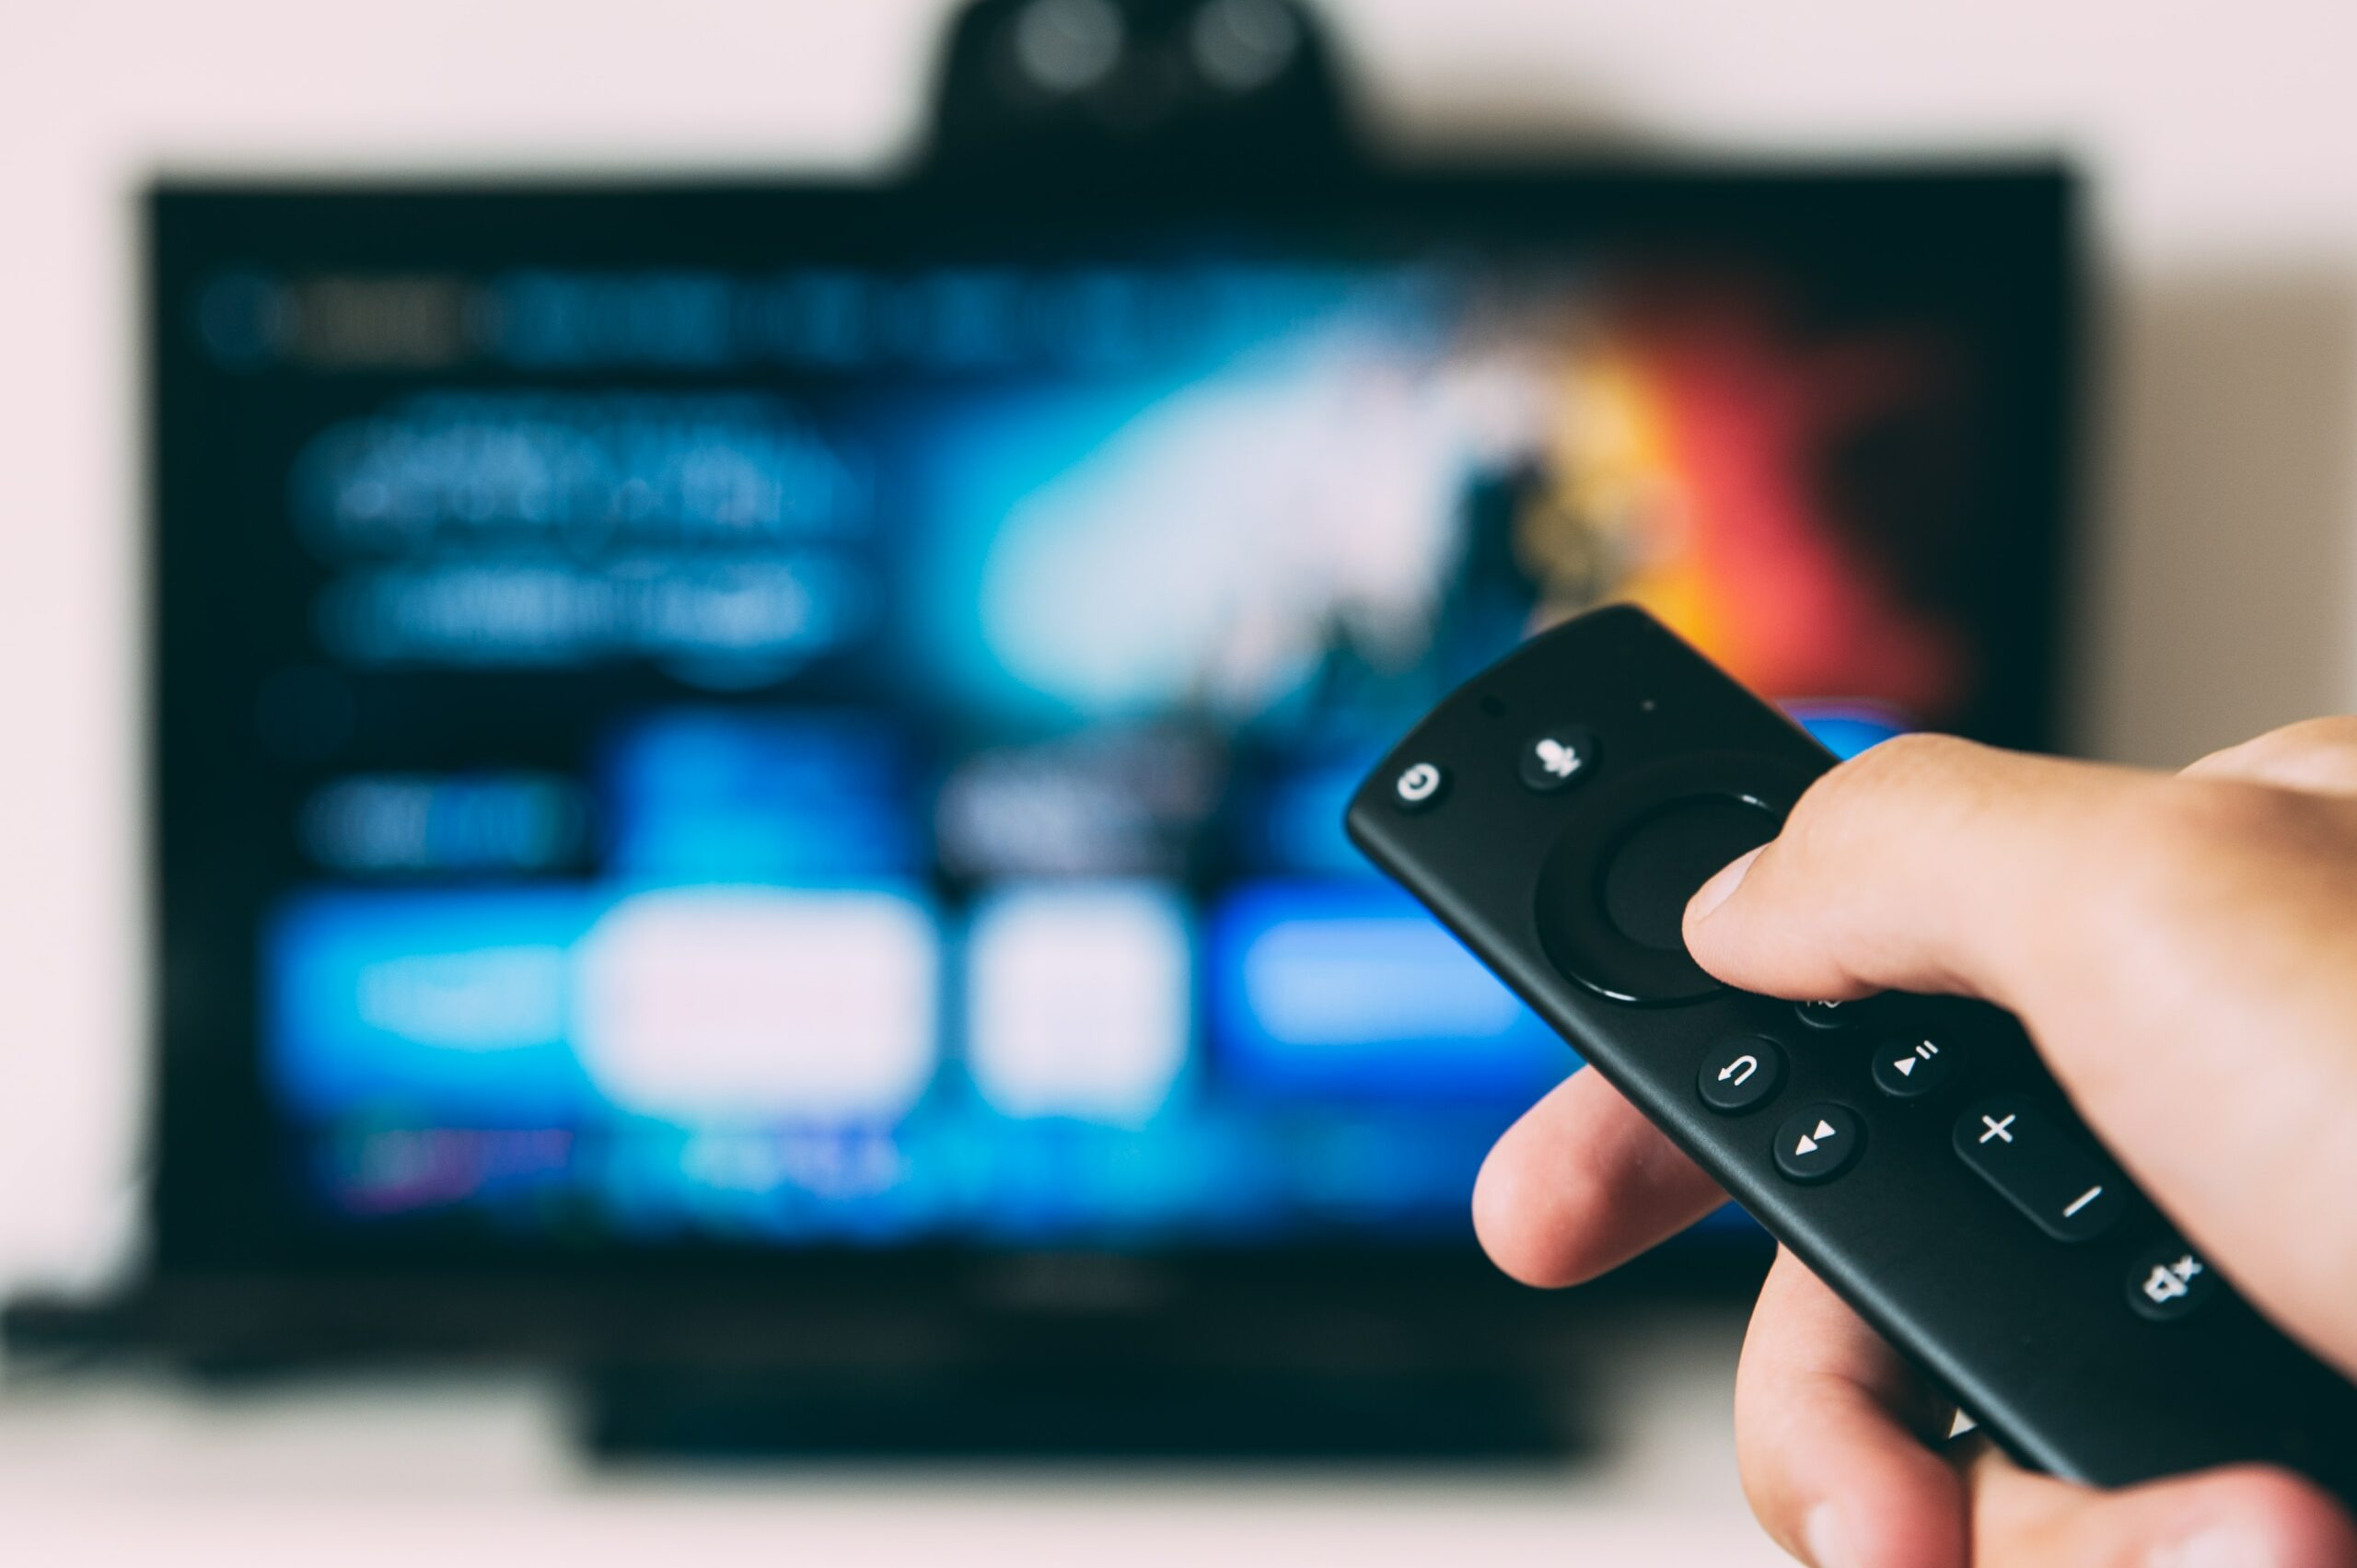 person holding apple tv remote with netflix home screen